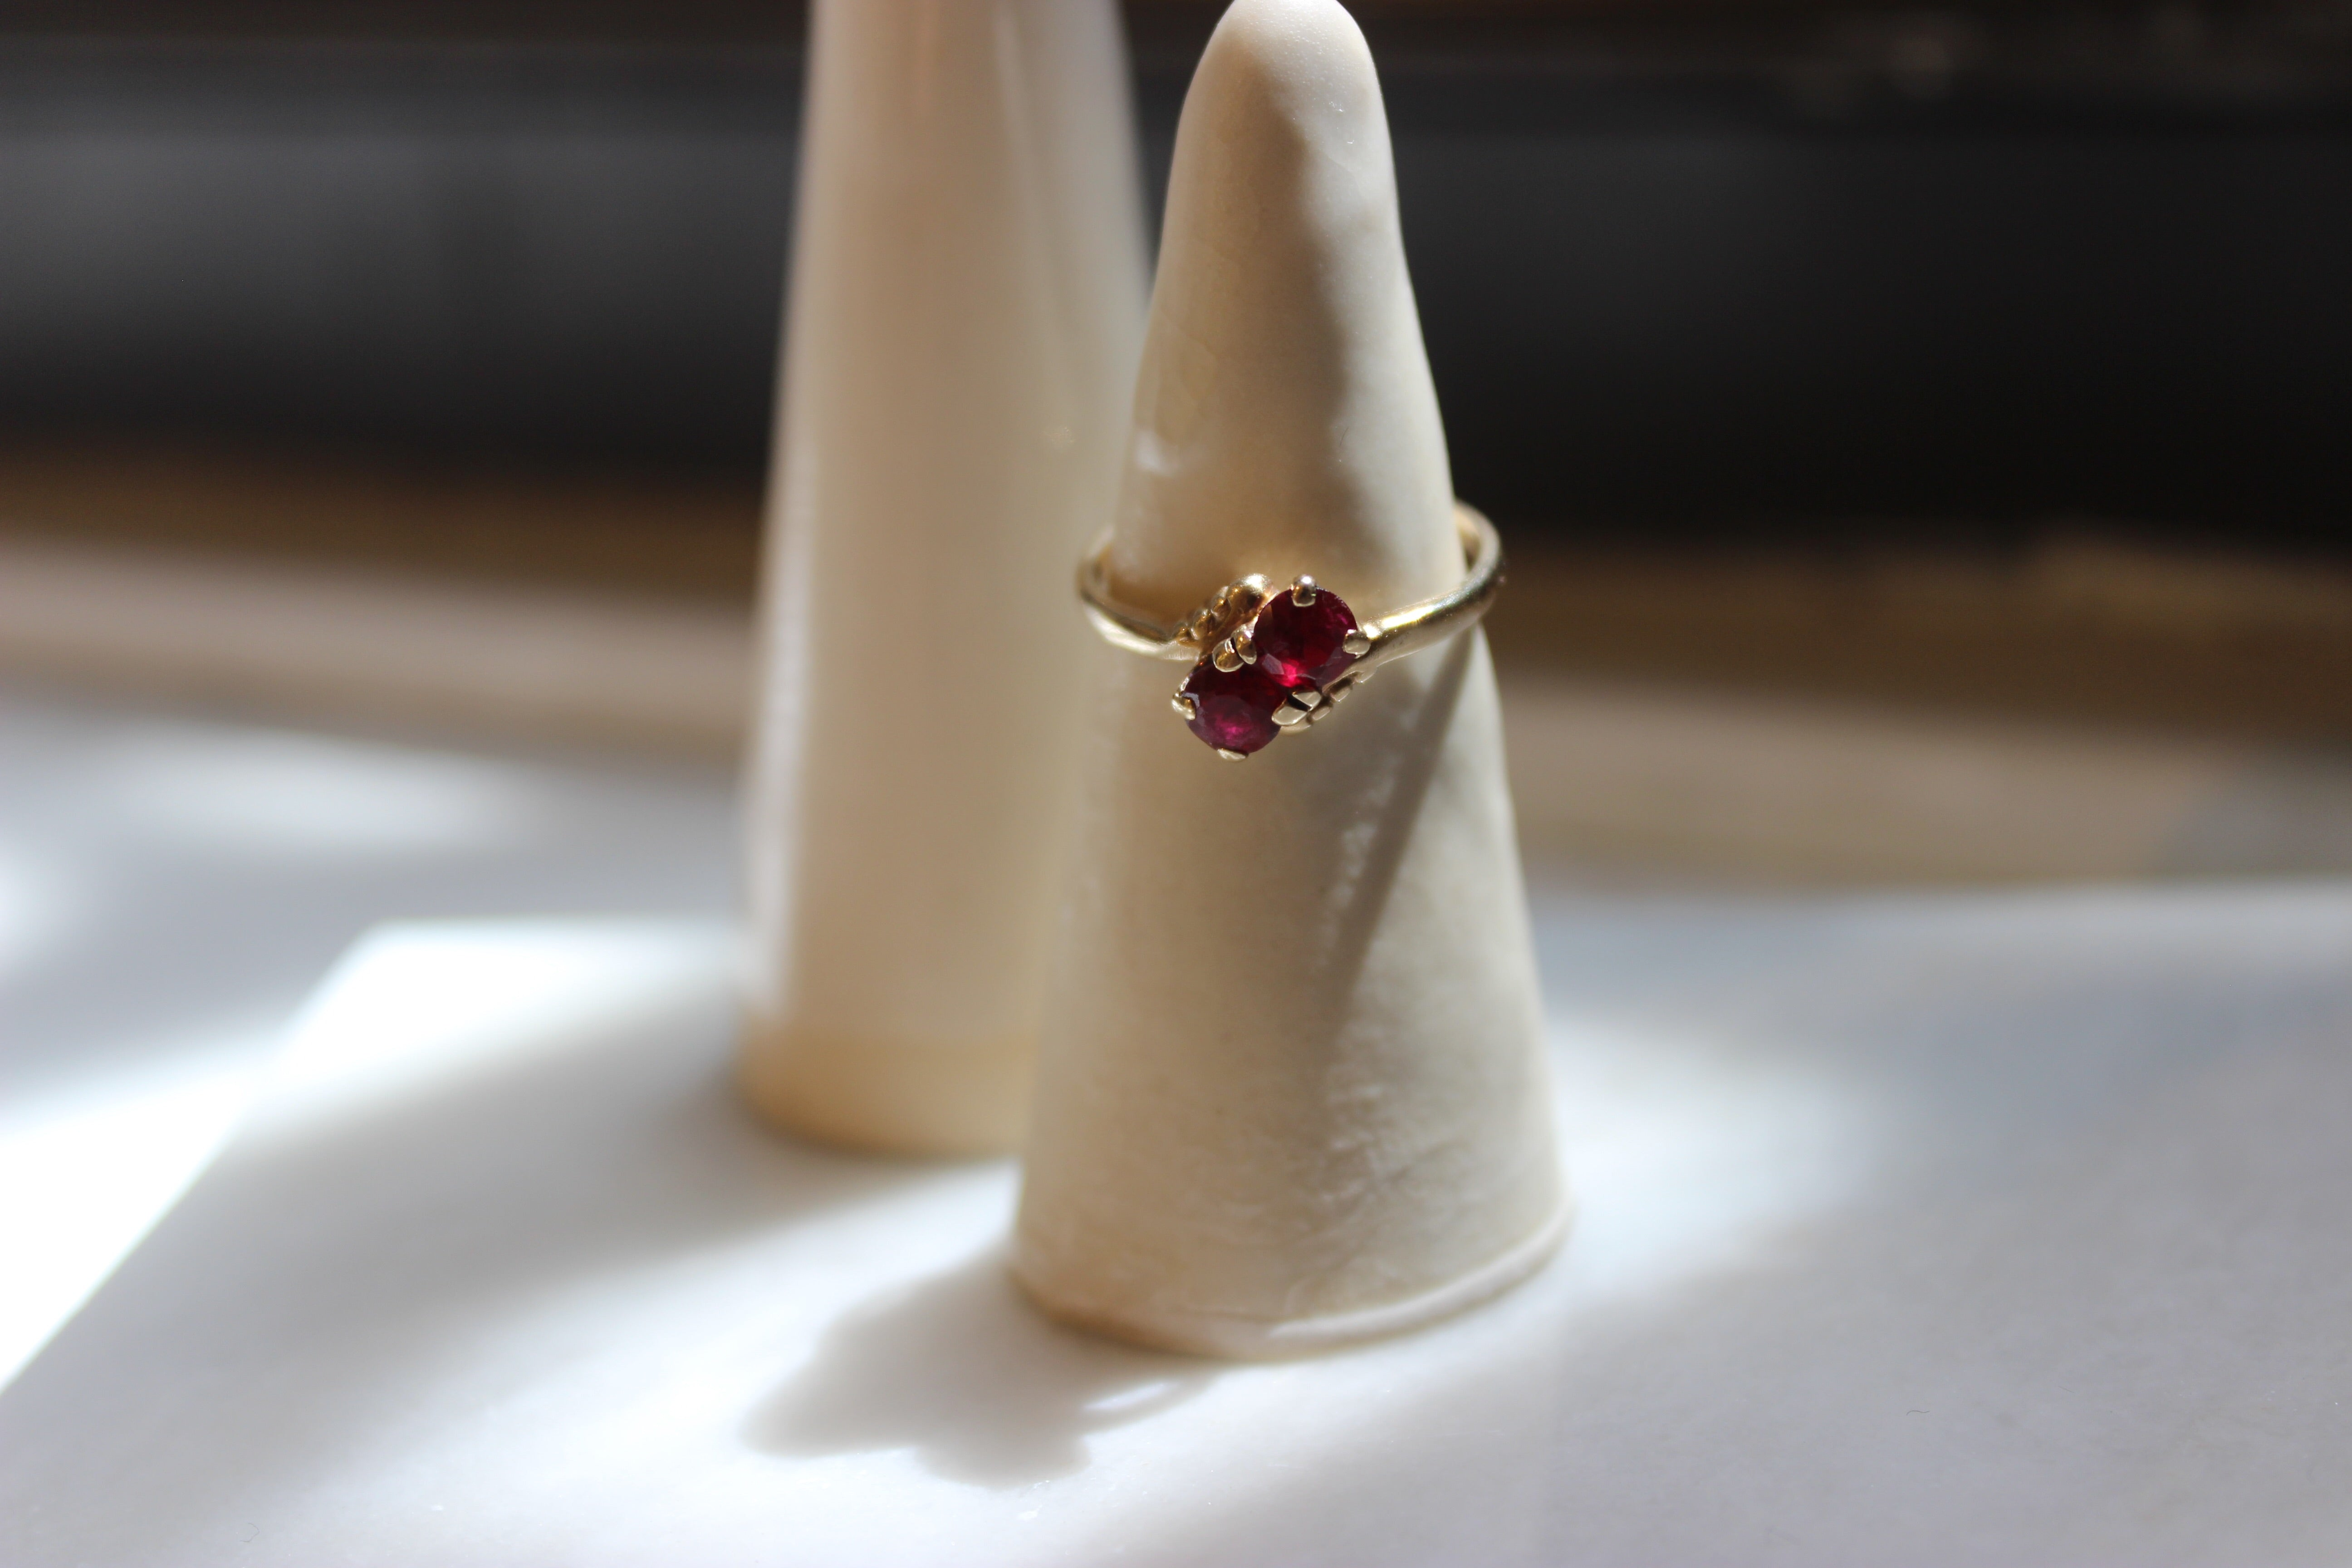 Vintage 10k Yellow Gold Ruby Ring